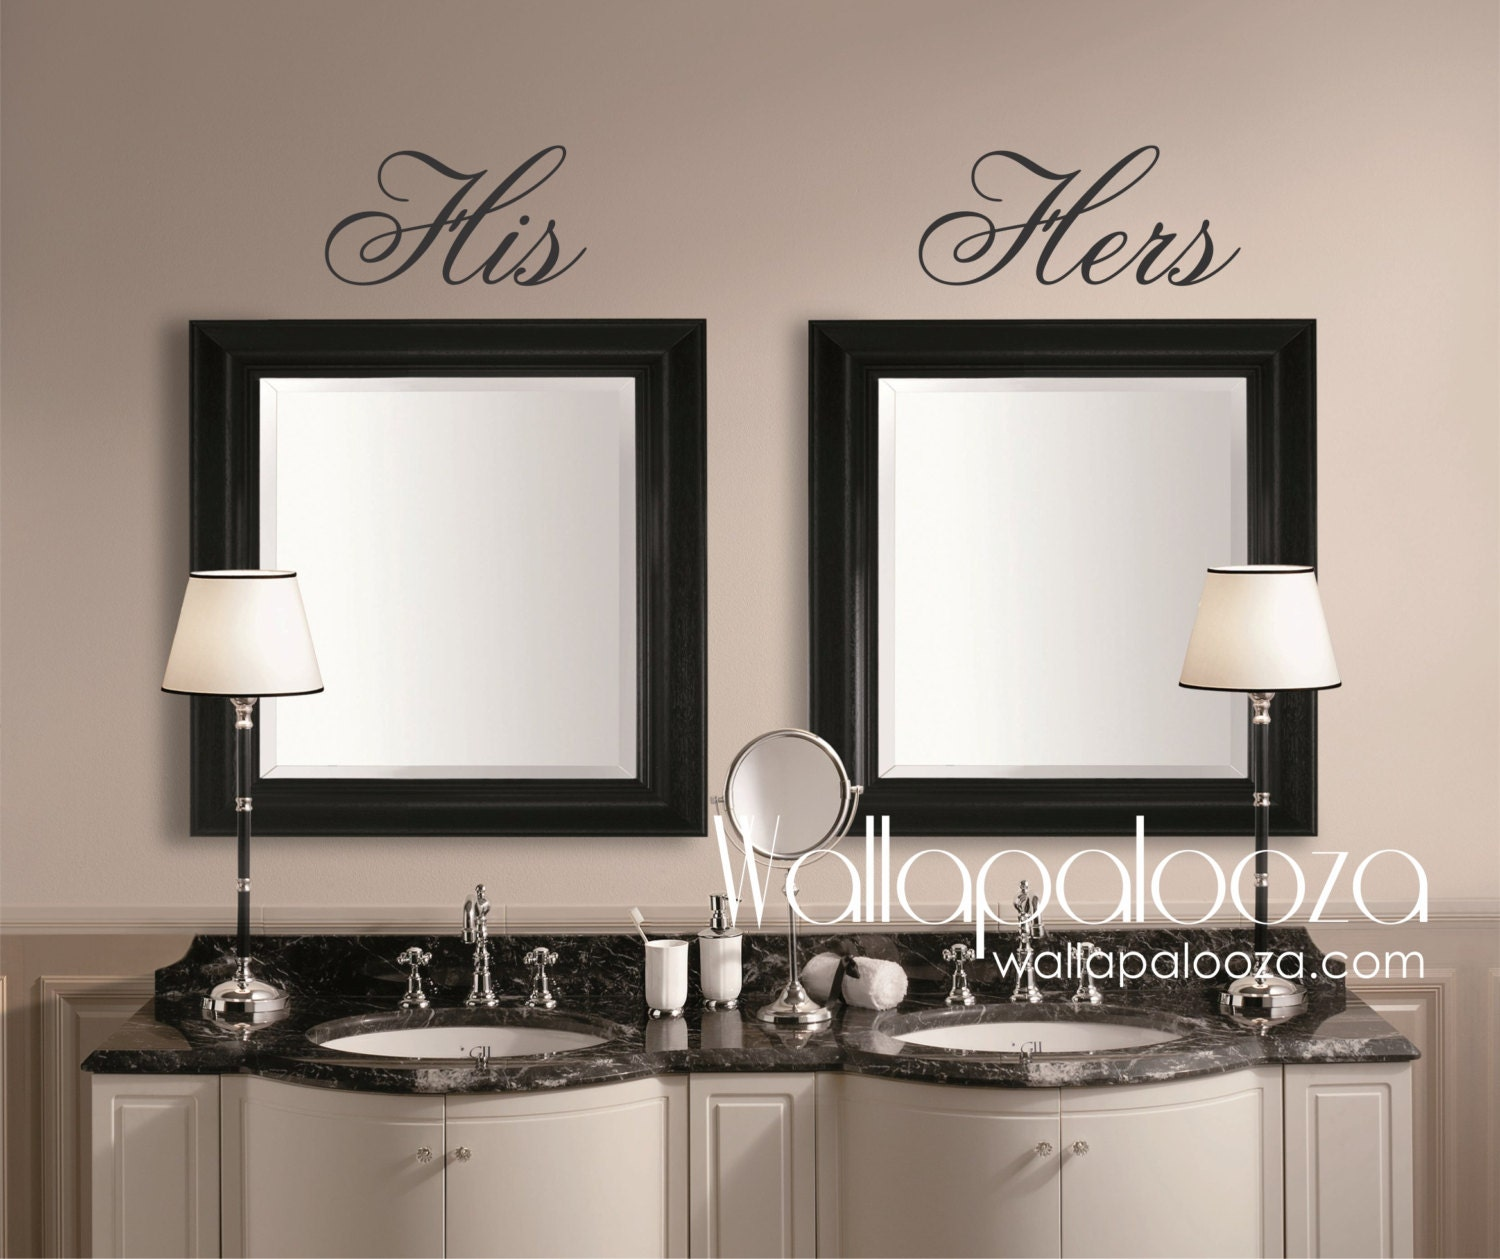 Bathroom wall decor his and hers wall decal mirror decal for Bathroom decor mirrors